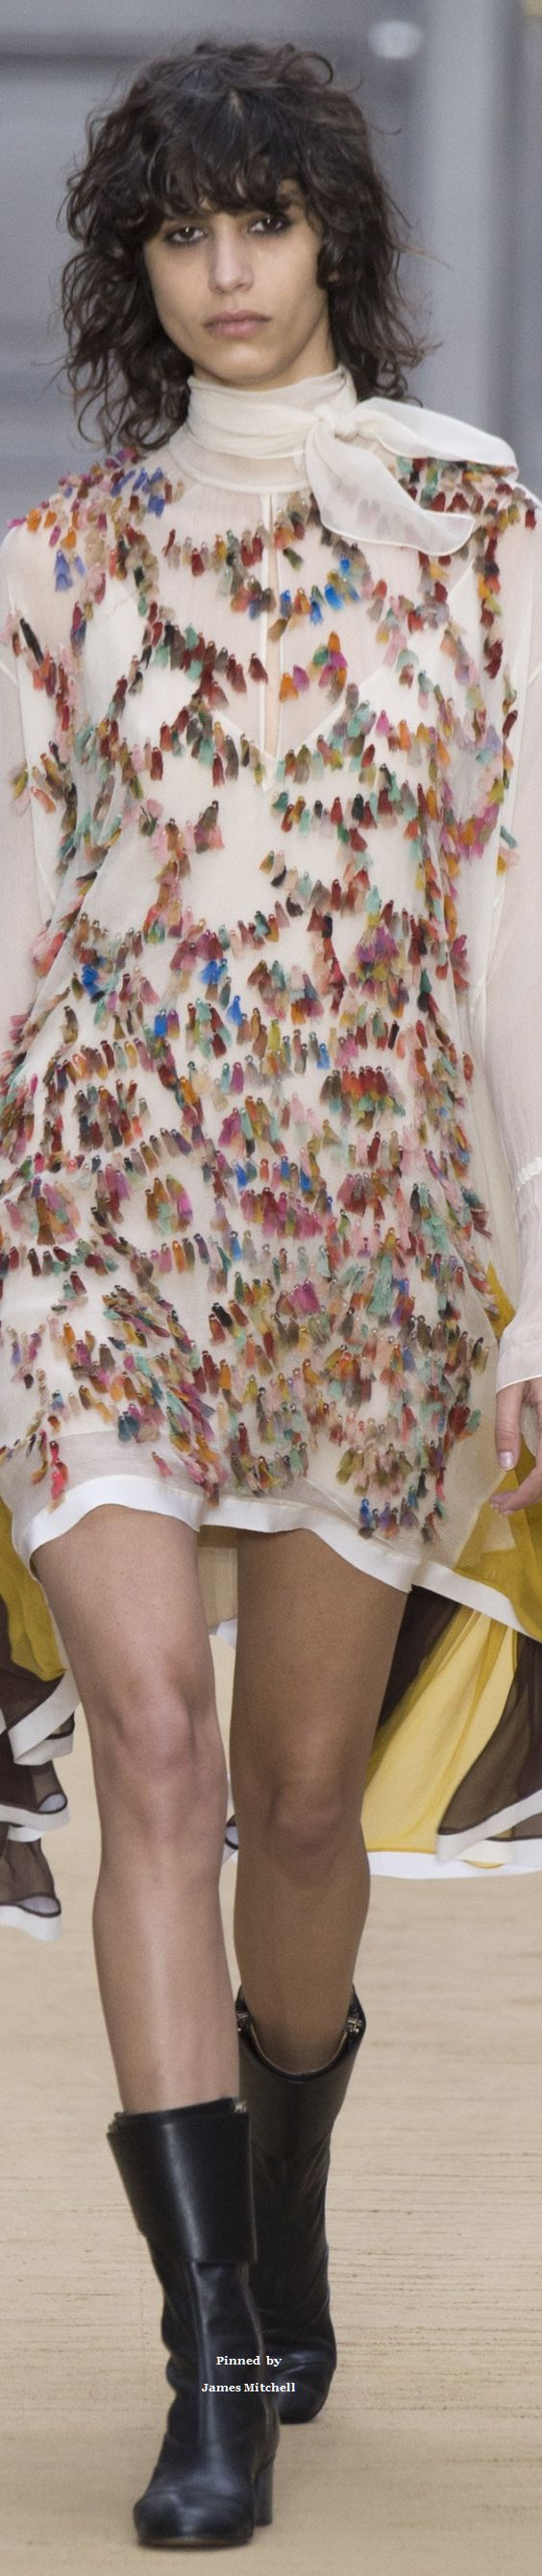 Chloé Collection Fall 2016 Ready-to-Wear